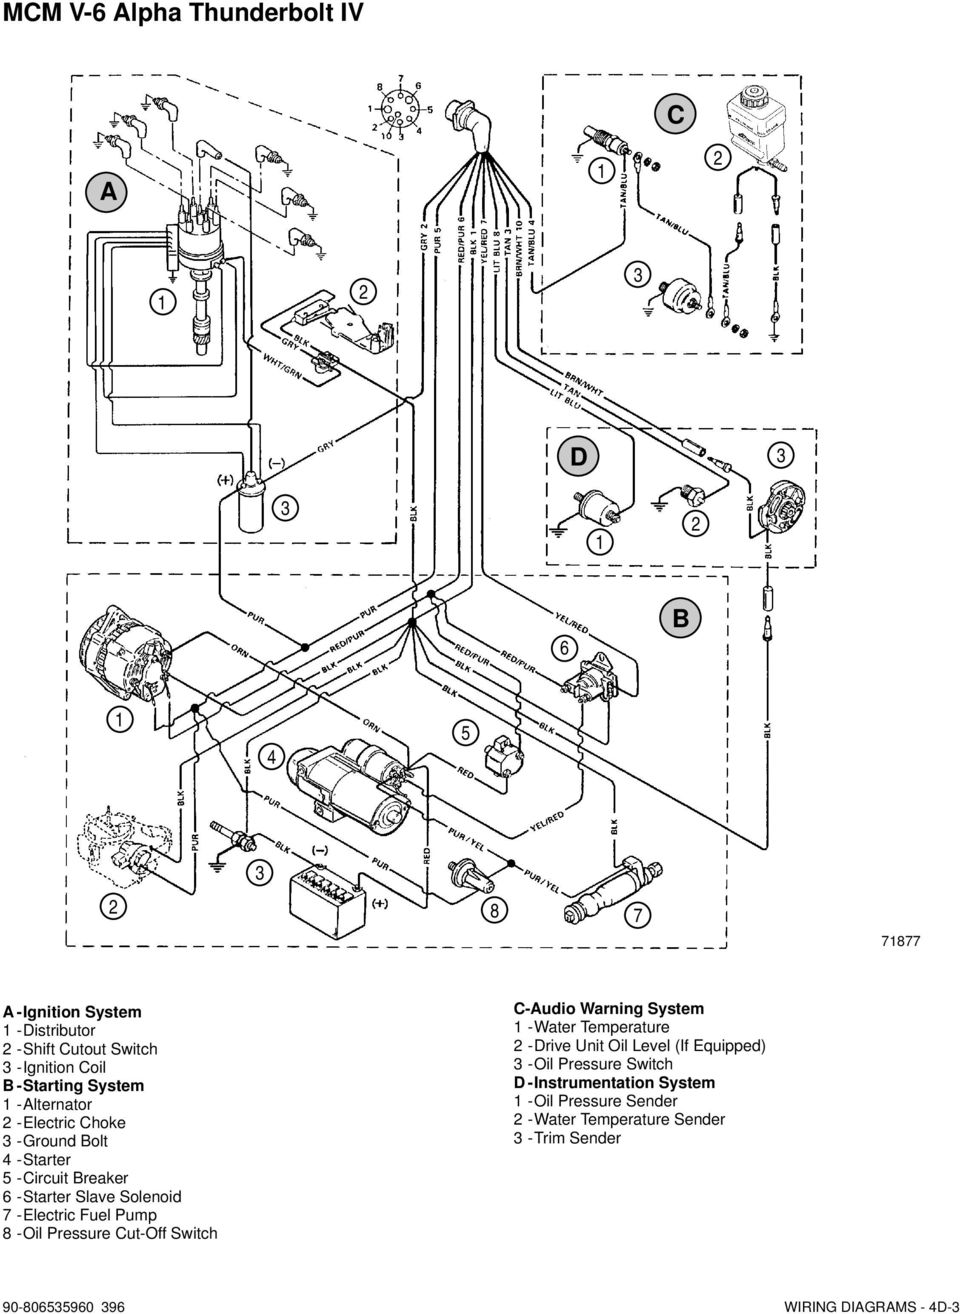 Pre Alpha Wiring Schematic Starter Trusted Diagrams Ford Motor Diagram Electrical Systems Pdf Rh Docplayer Net Switch